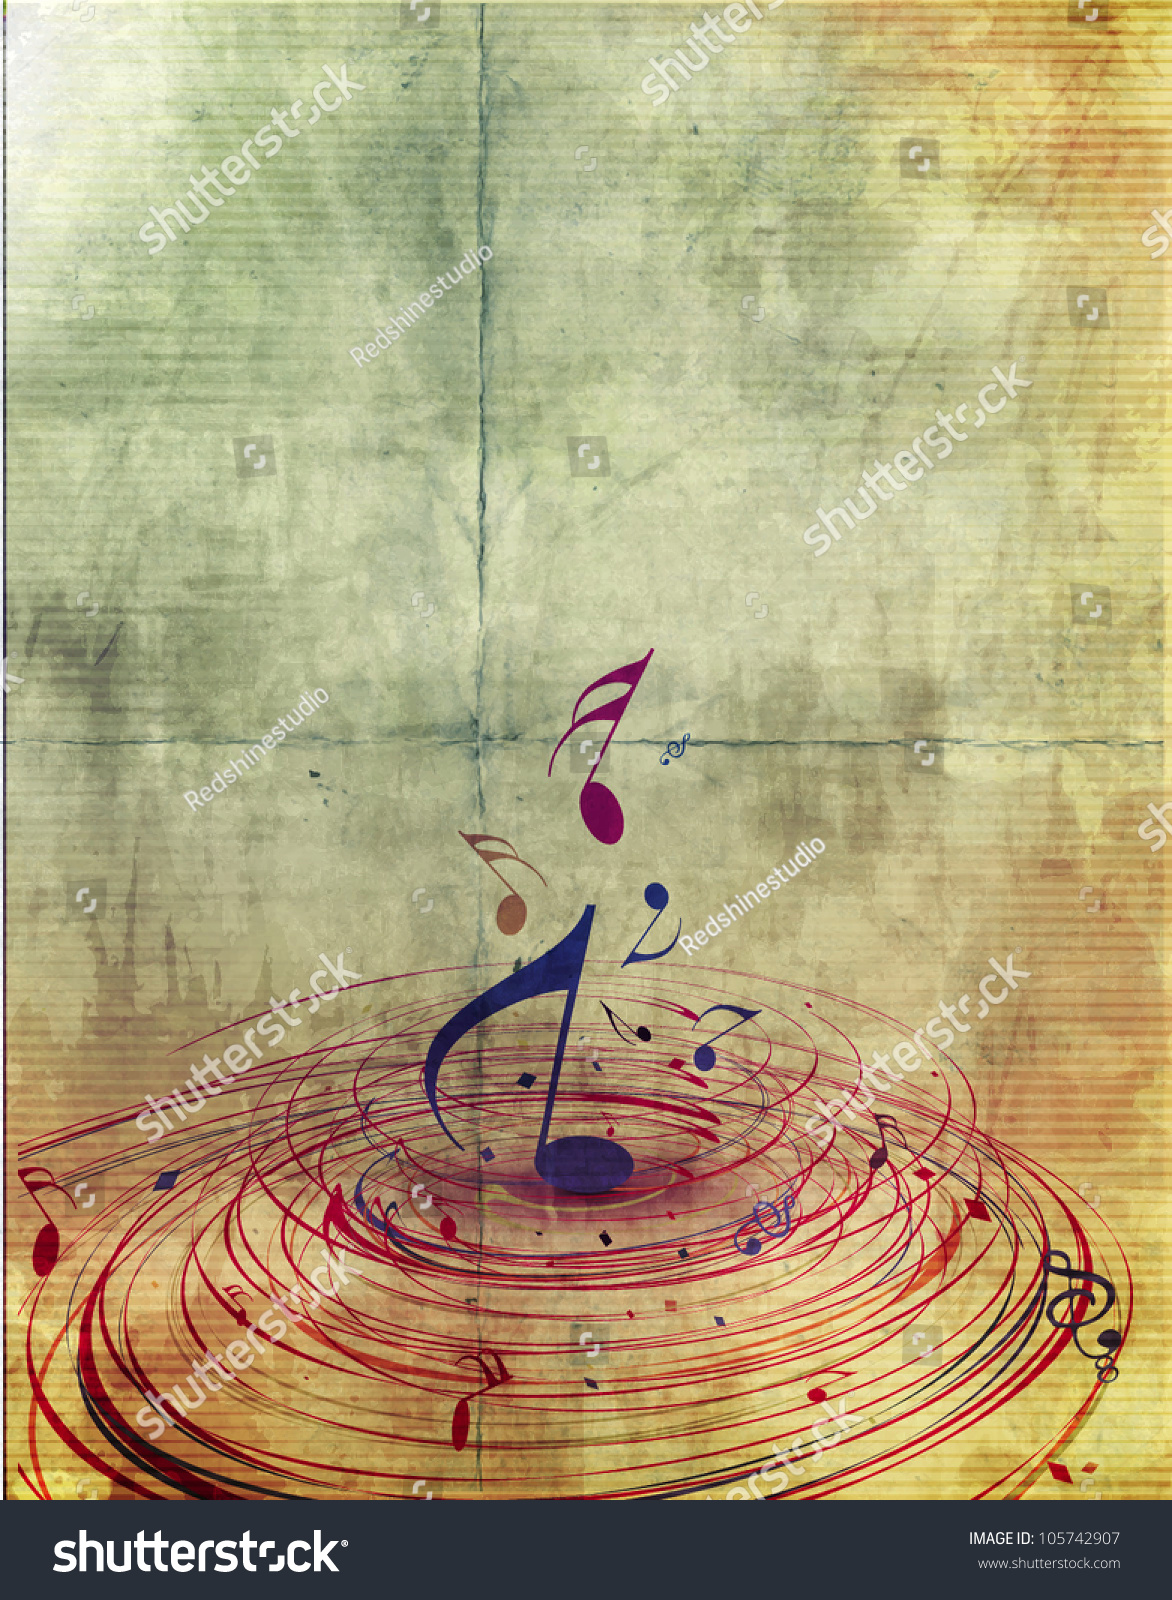 abstract music notes design music background stock vector 105742907